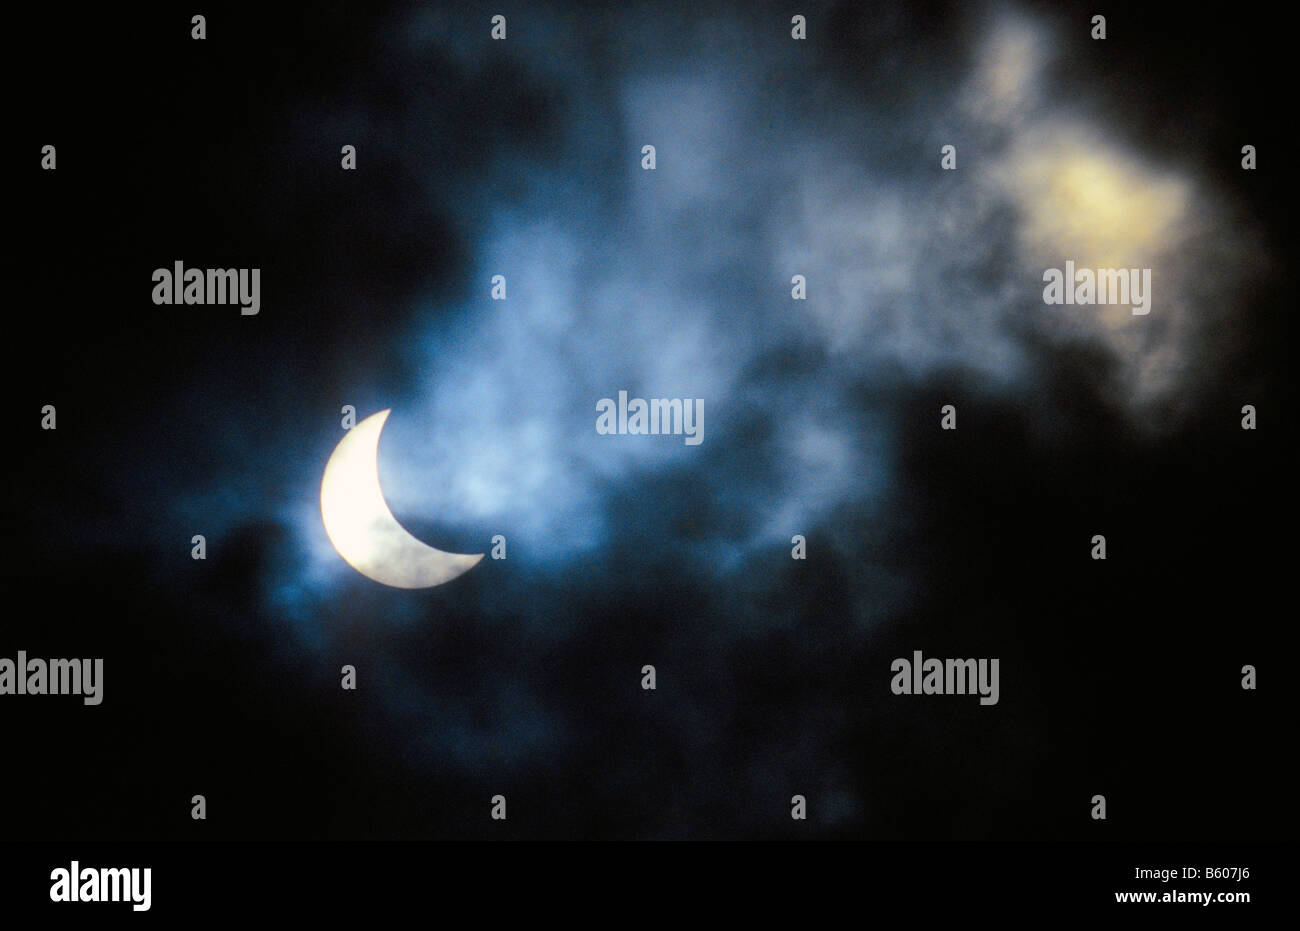 Partial solar eclipse -  11th August 1999, Wales, UK. - Stock Image